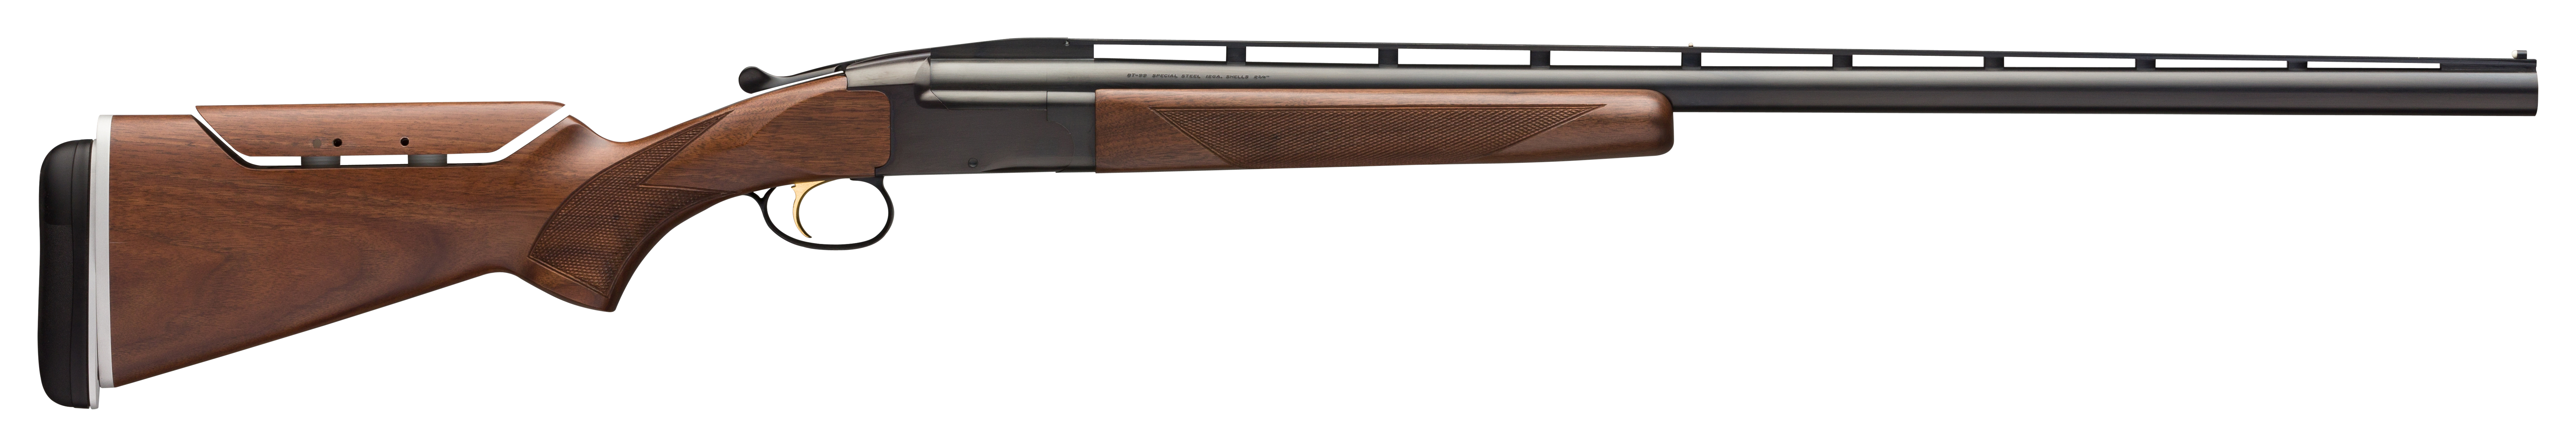 Browning BT-99 Micro Break Open Shotgun 2.75'' 12 Gauge 30'' Steel - Walnut Adjustable